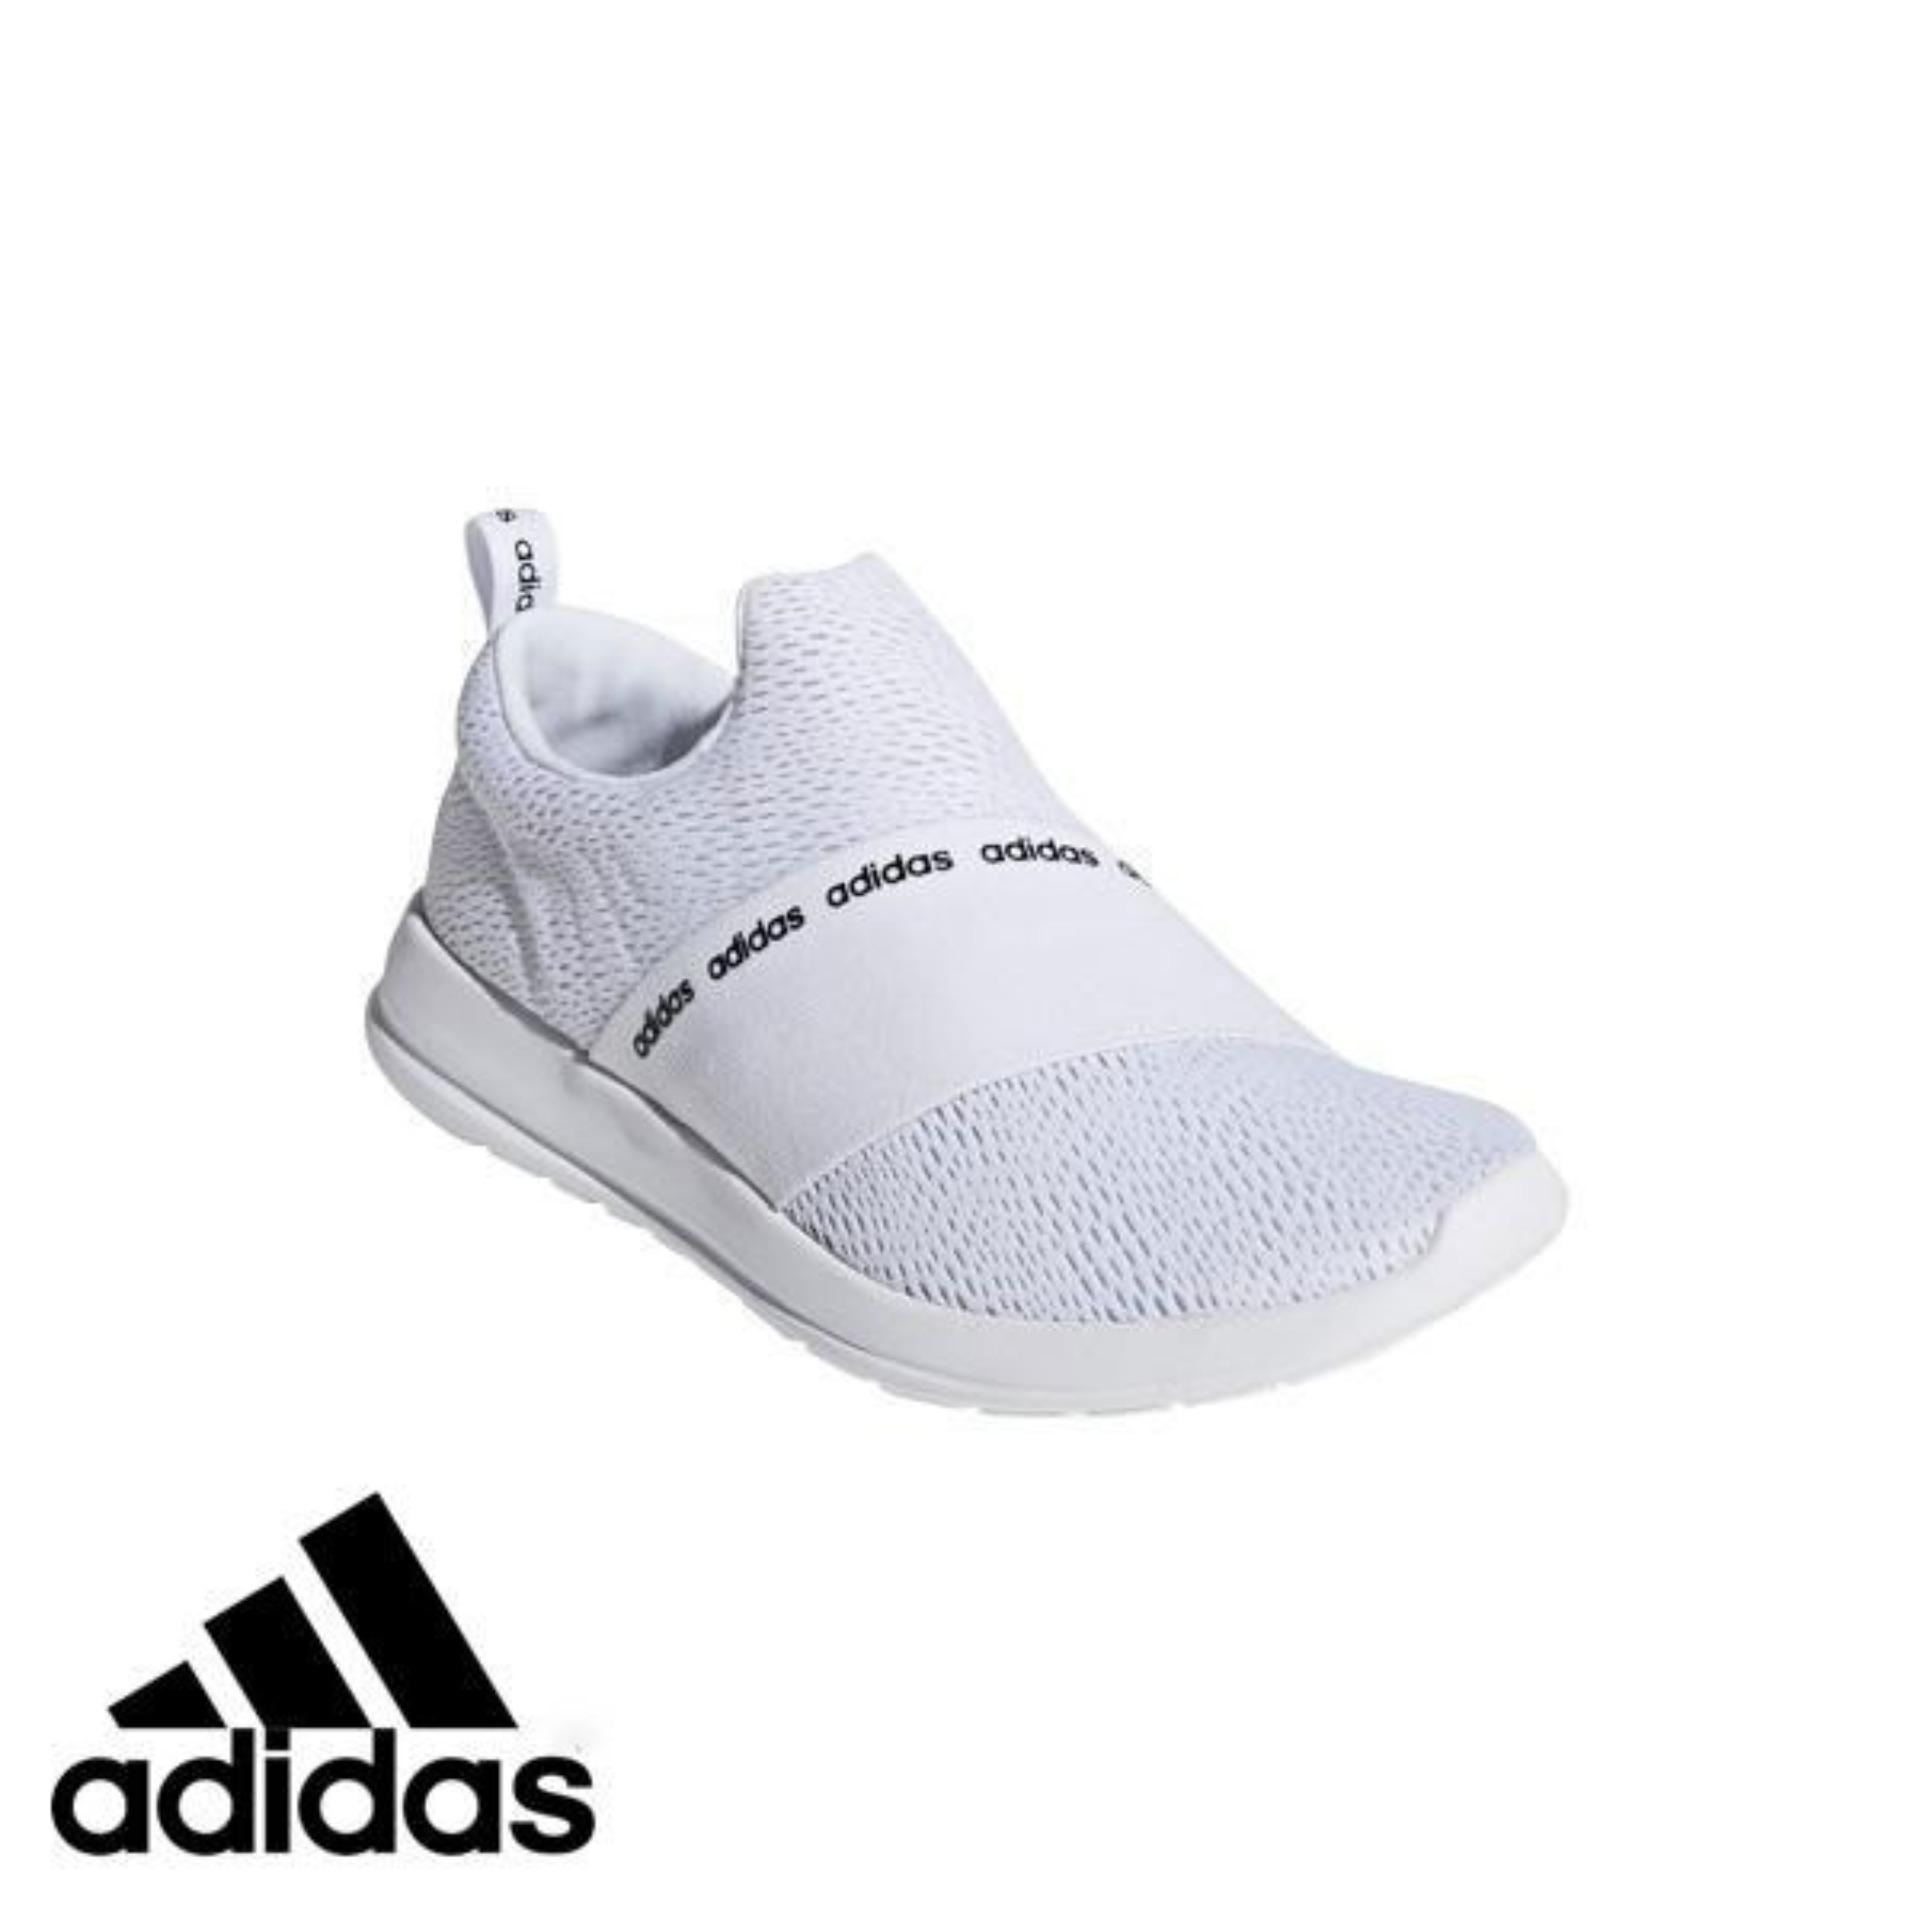 c12913629b7 Adidas Sports Shoes Philippines - Adidas Sports Clothing for sale ...